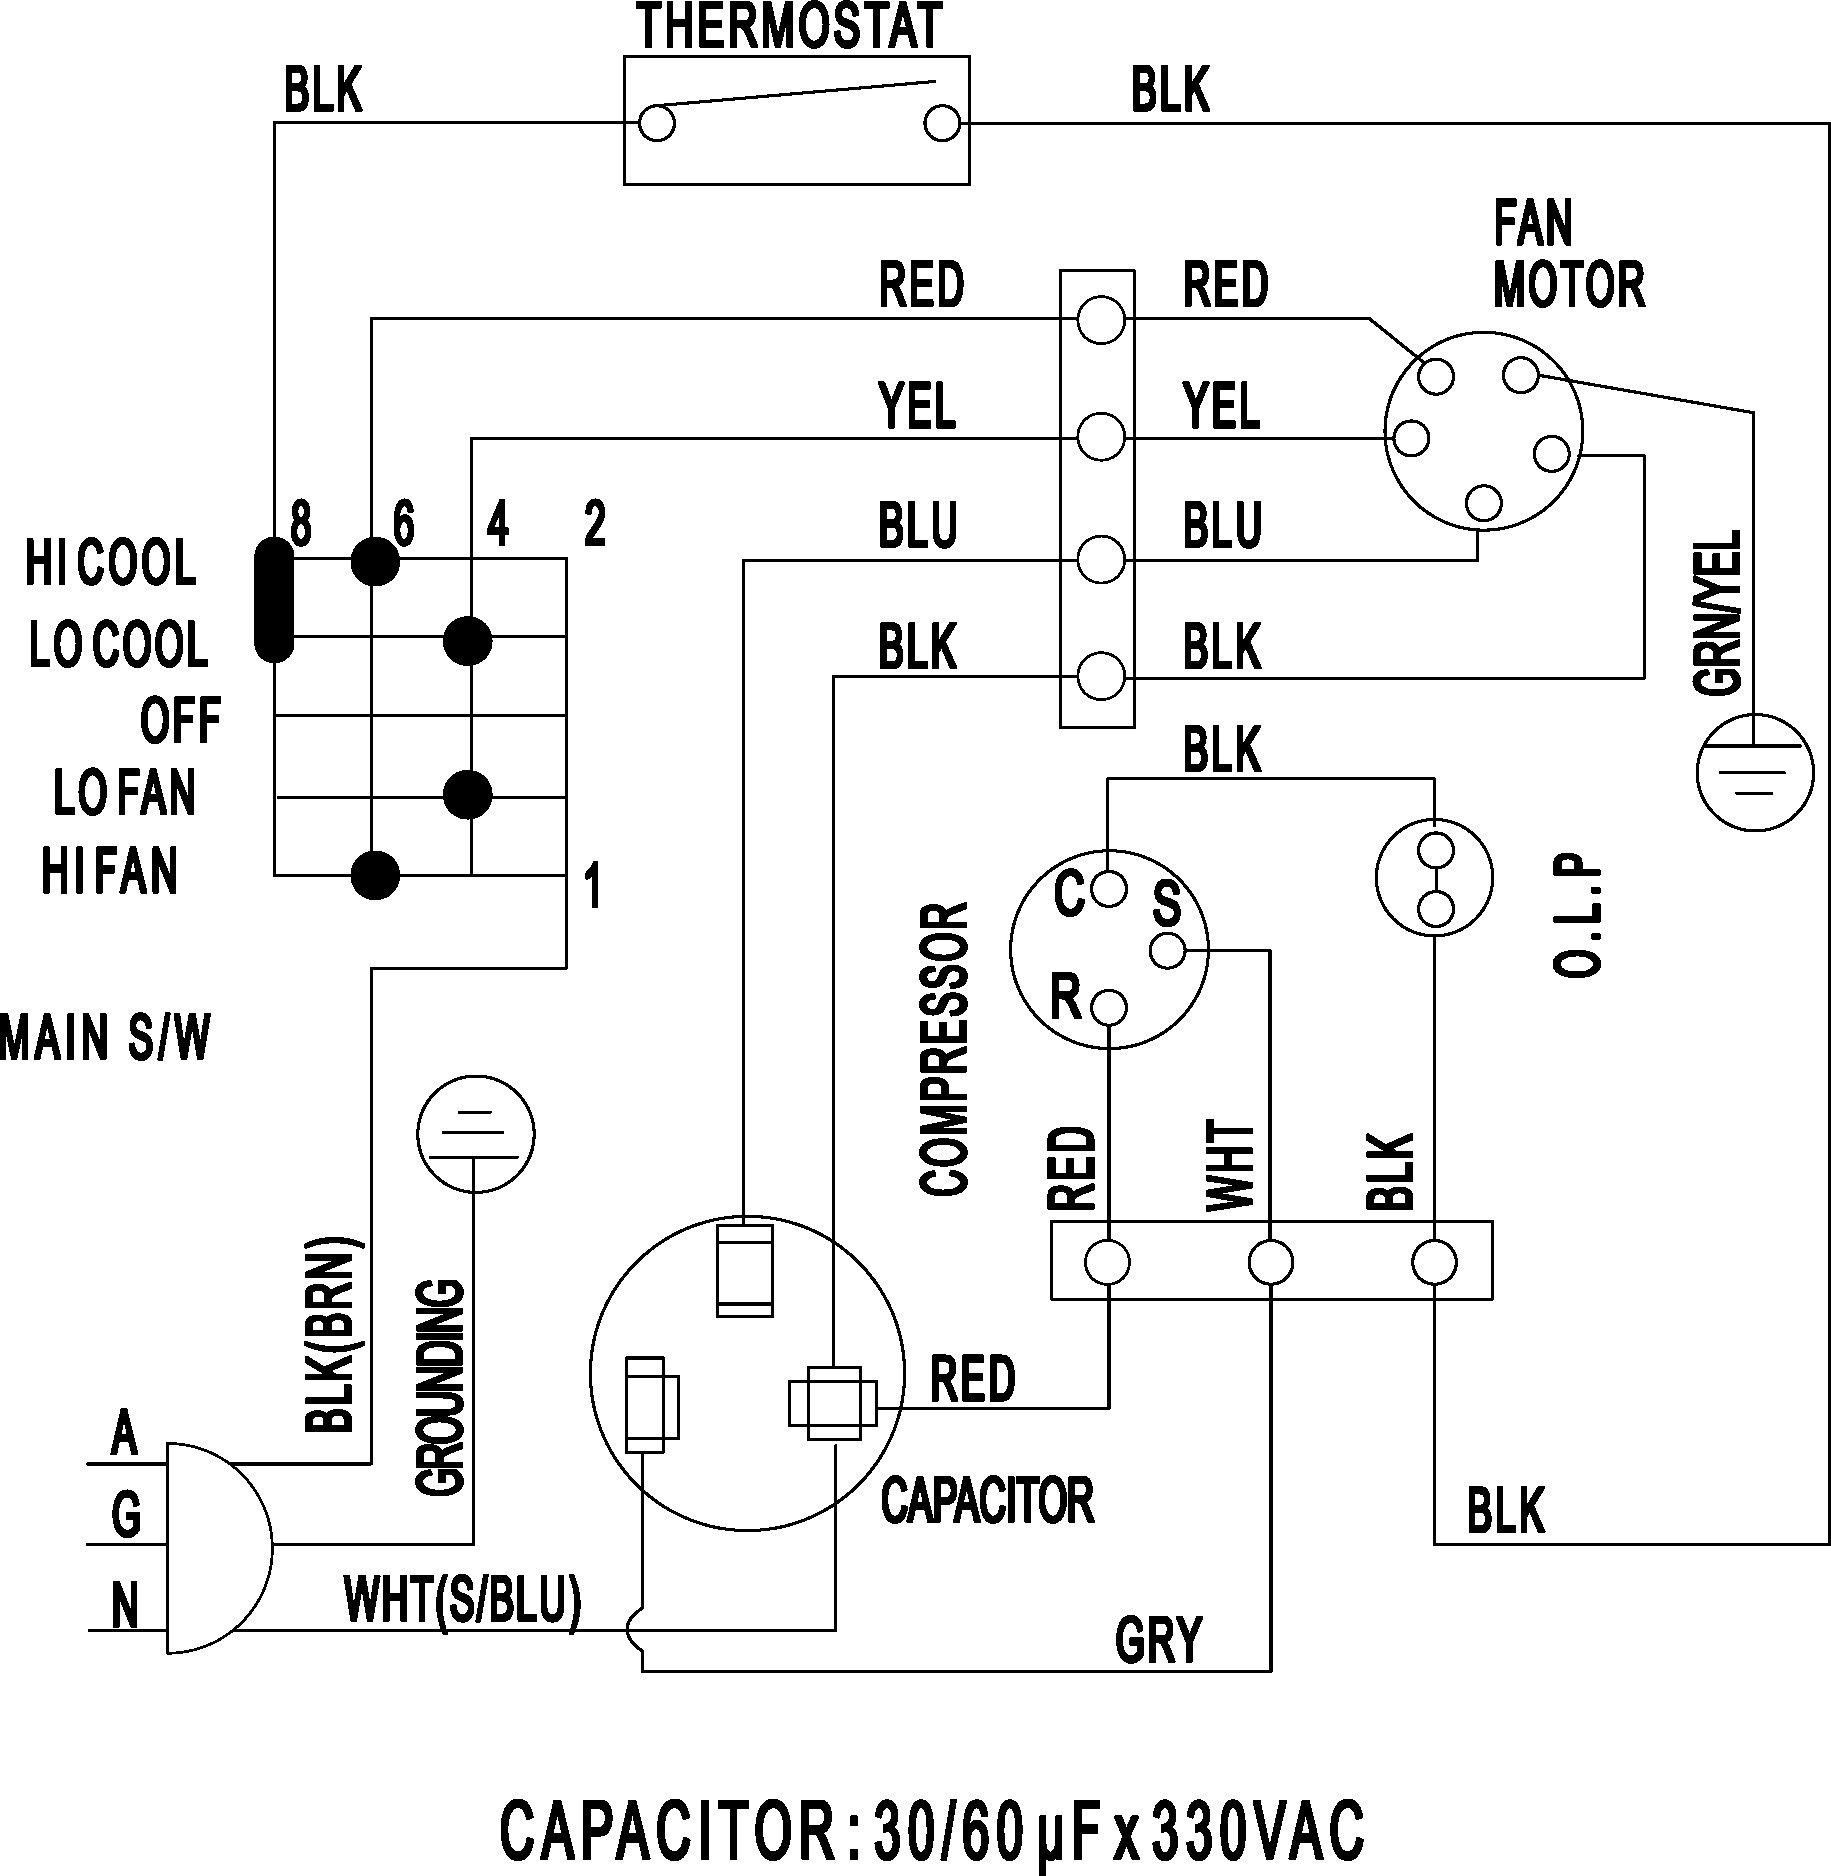 Unique Wiring Diagram Of Inverter Ac Diagram Diagramtemplate Diagramsample Check More At Https Servisi Co Wiring Diagram Of Elektronik Rangkaian Elektronik